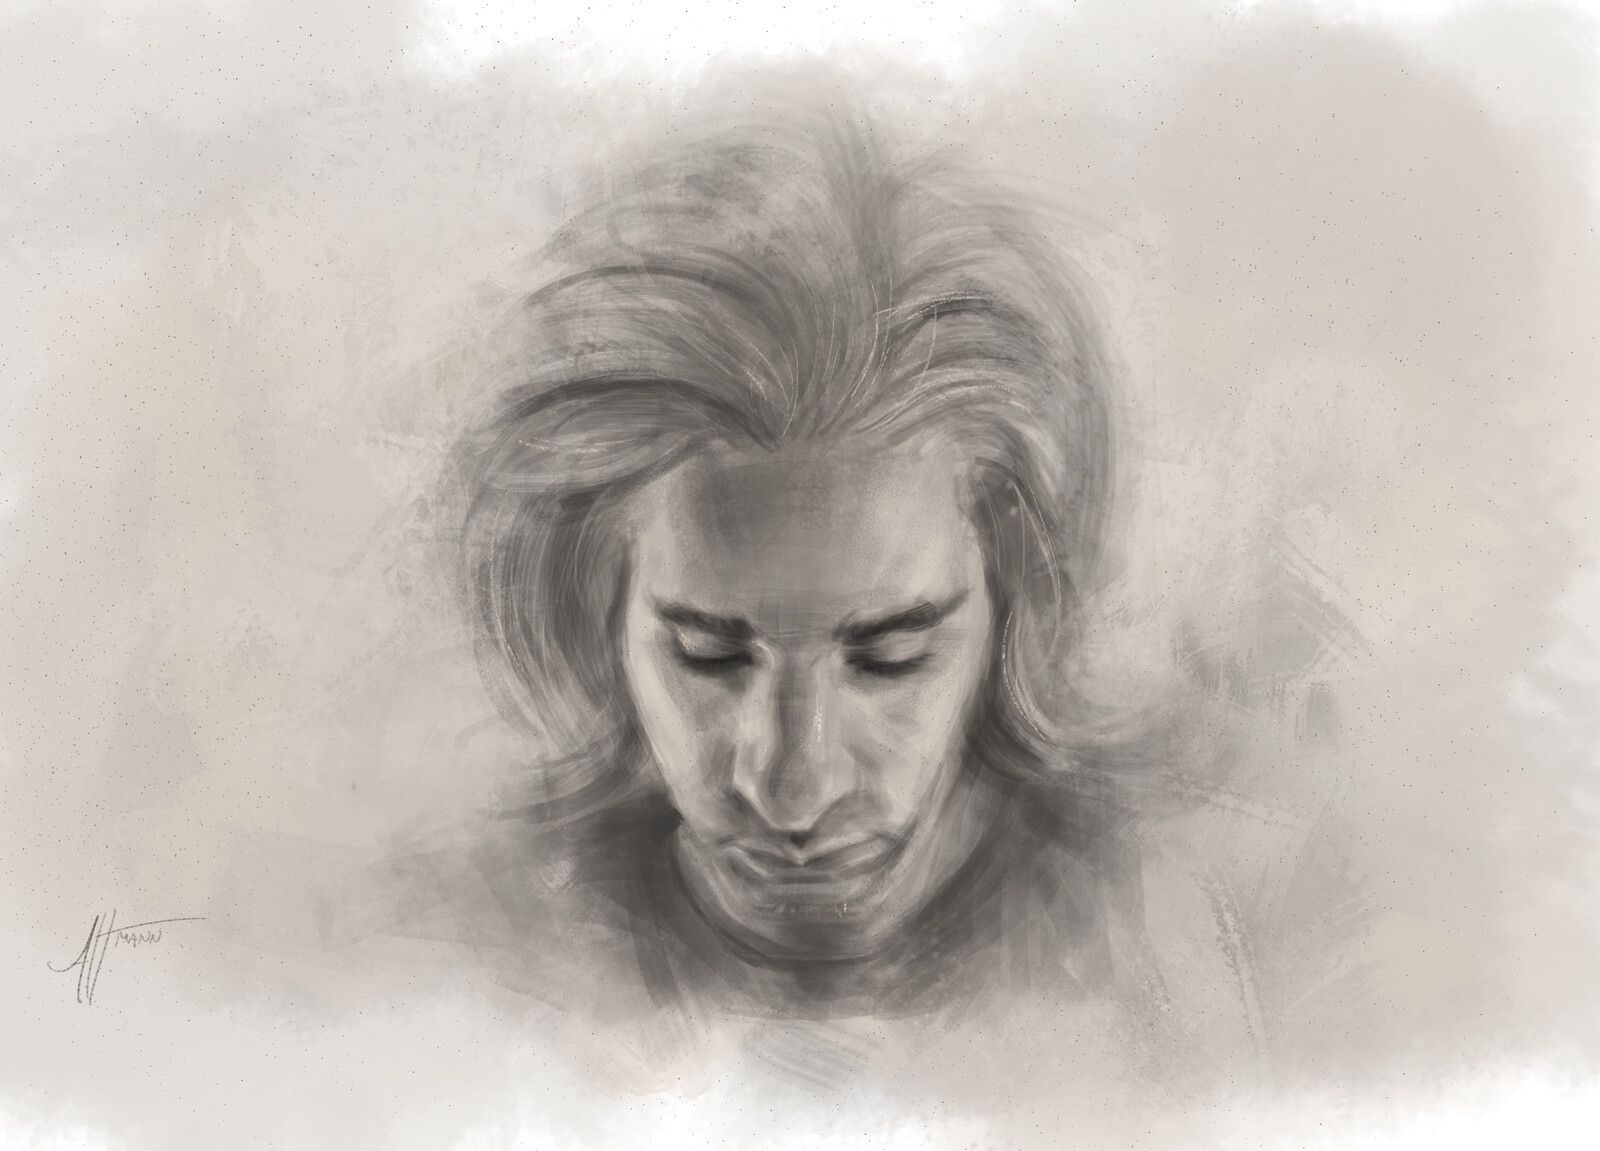 digital charcoal, self Portrait- process video